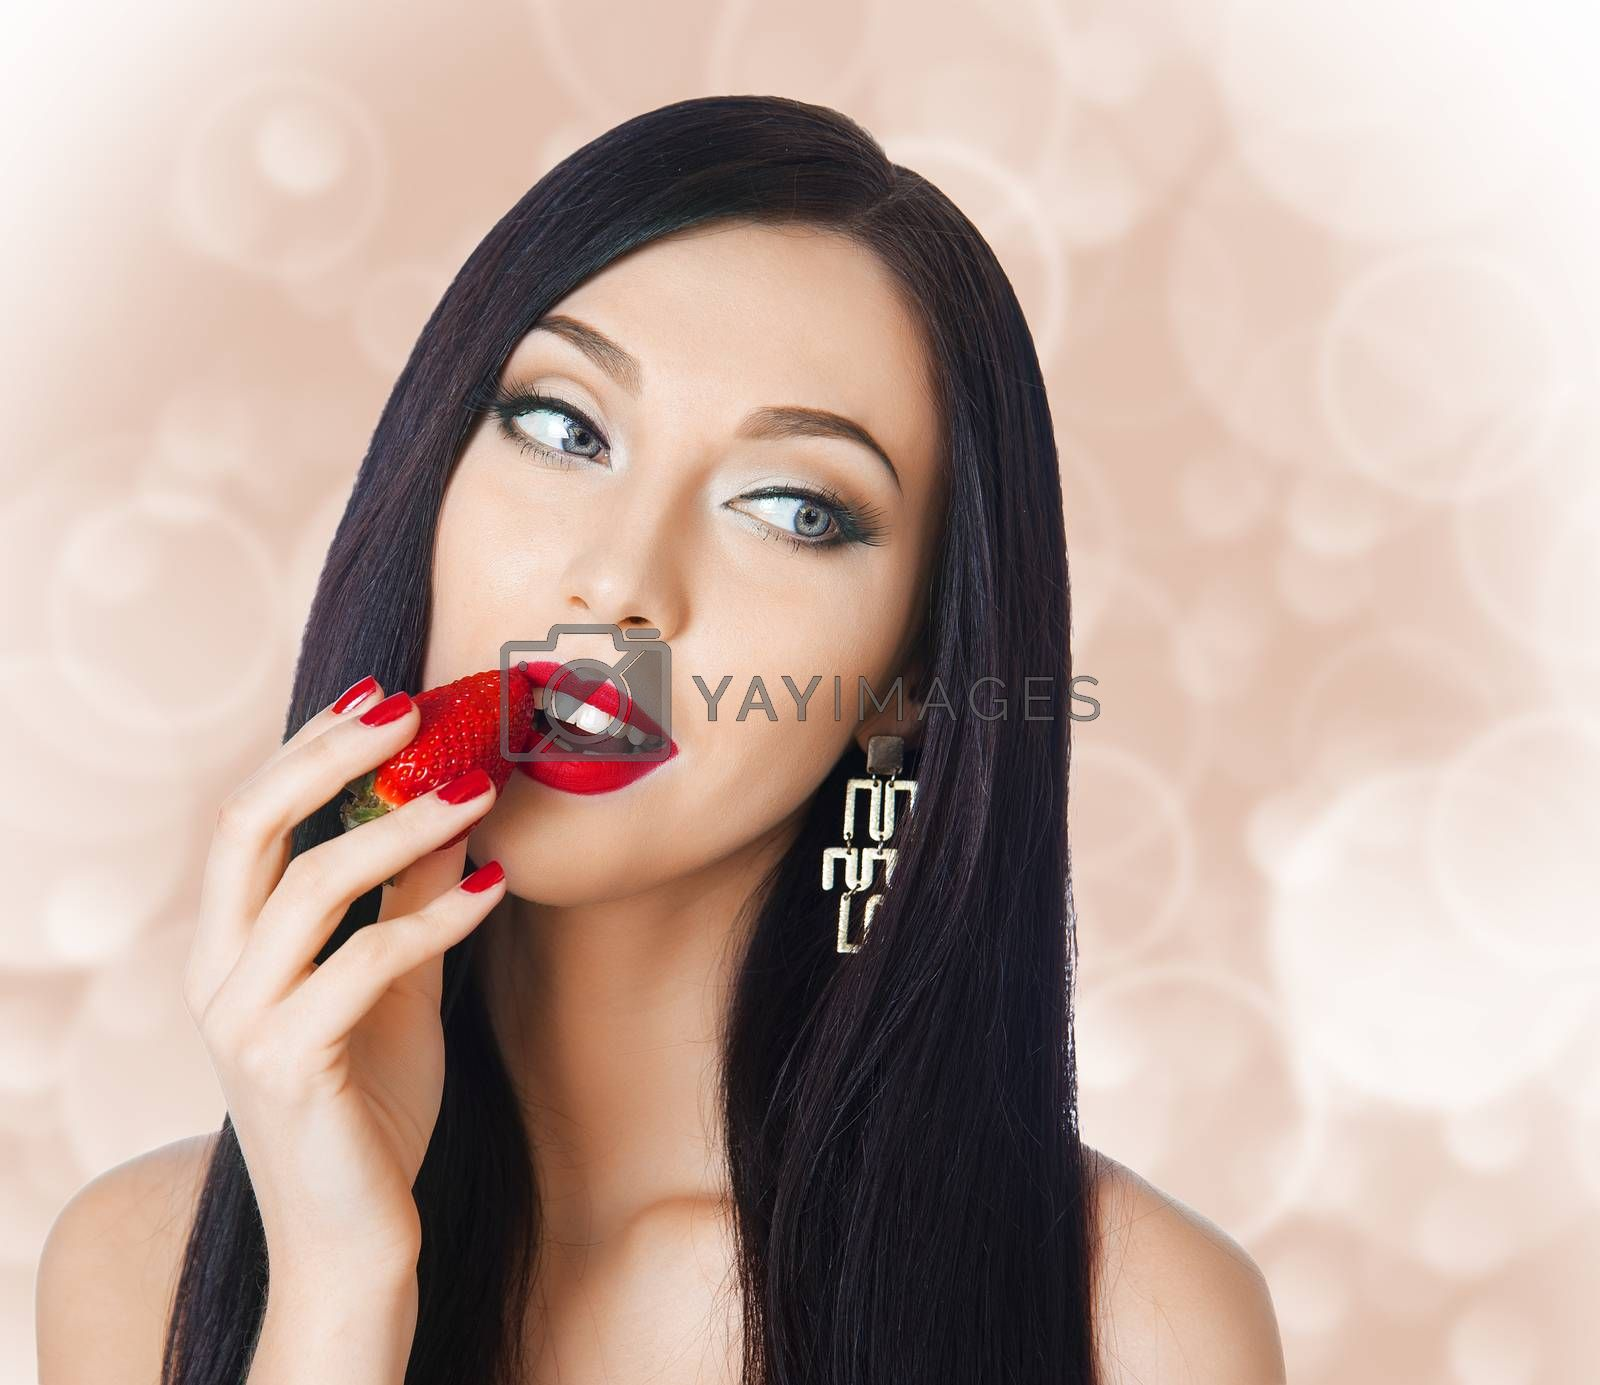 Royalty free image of woman eating strawberries by raduga21